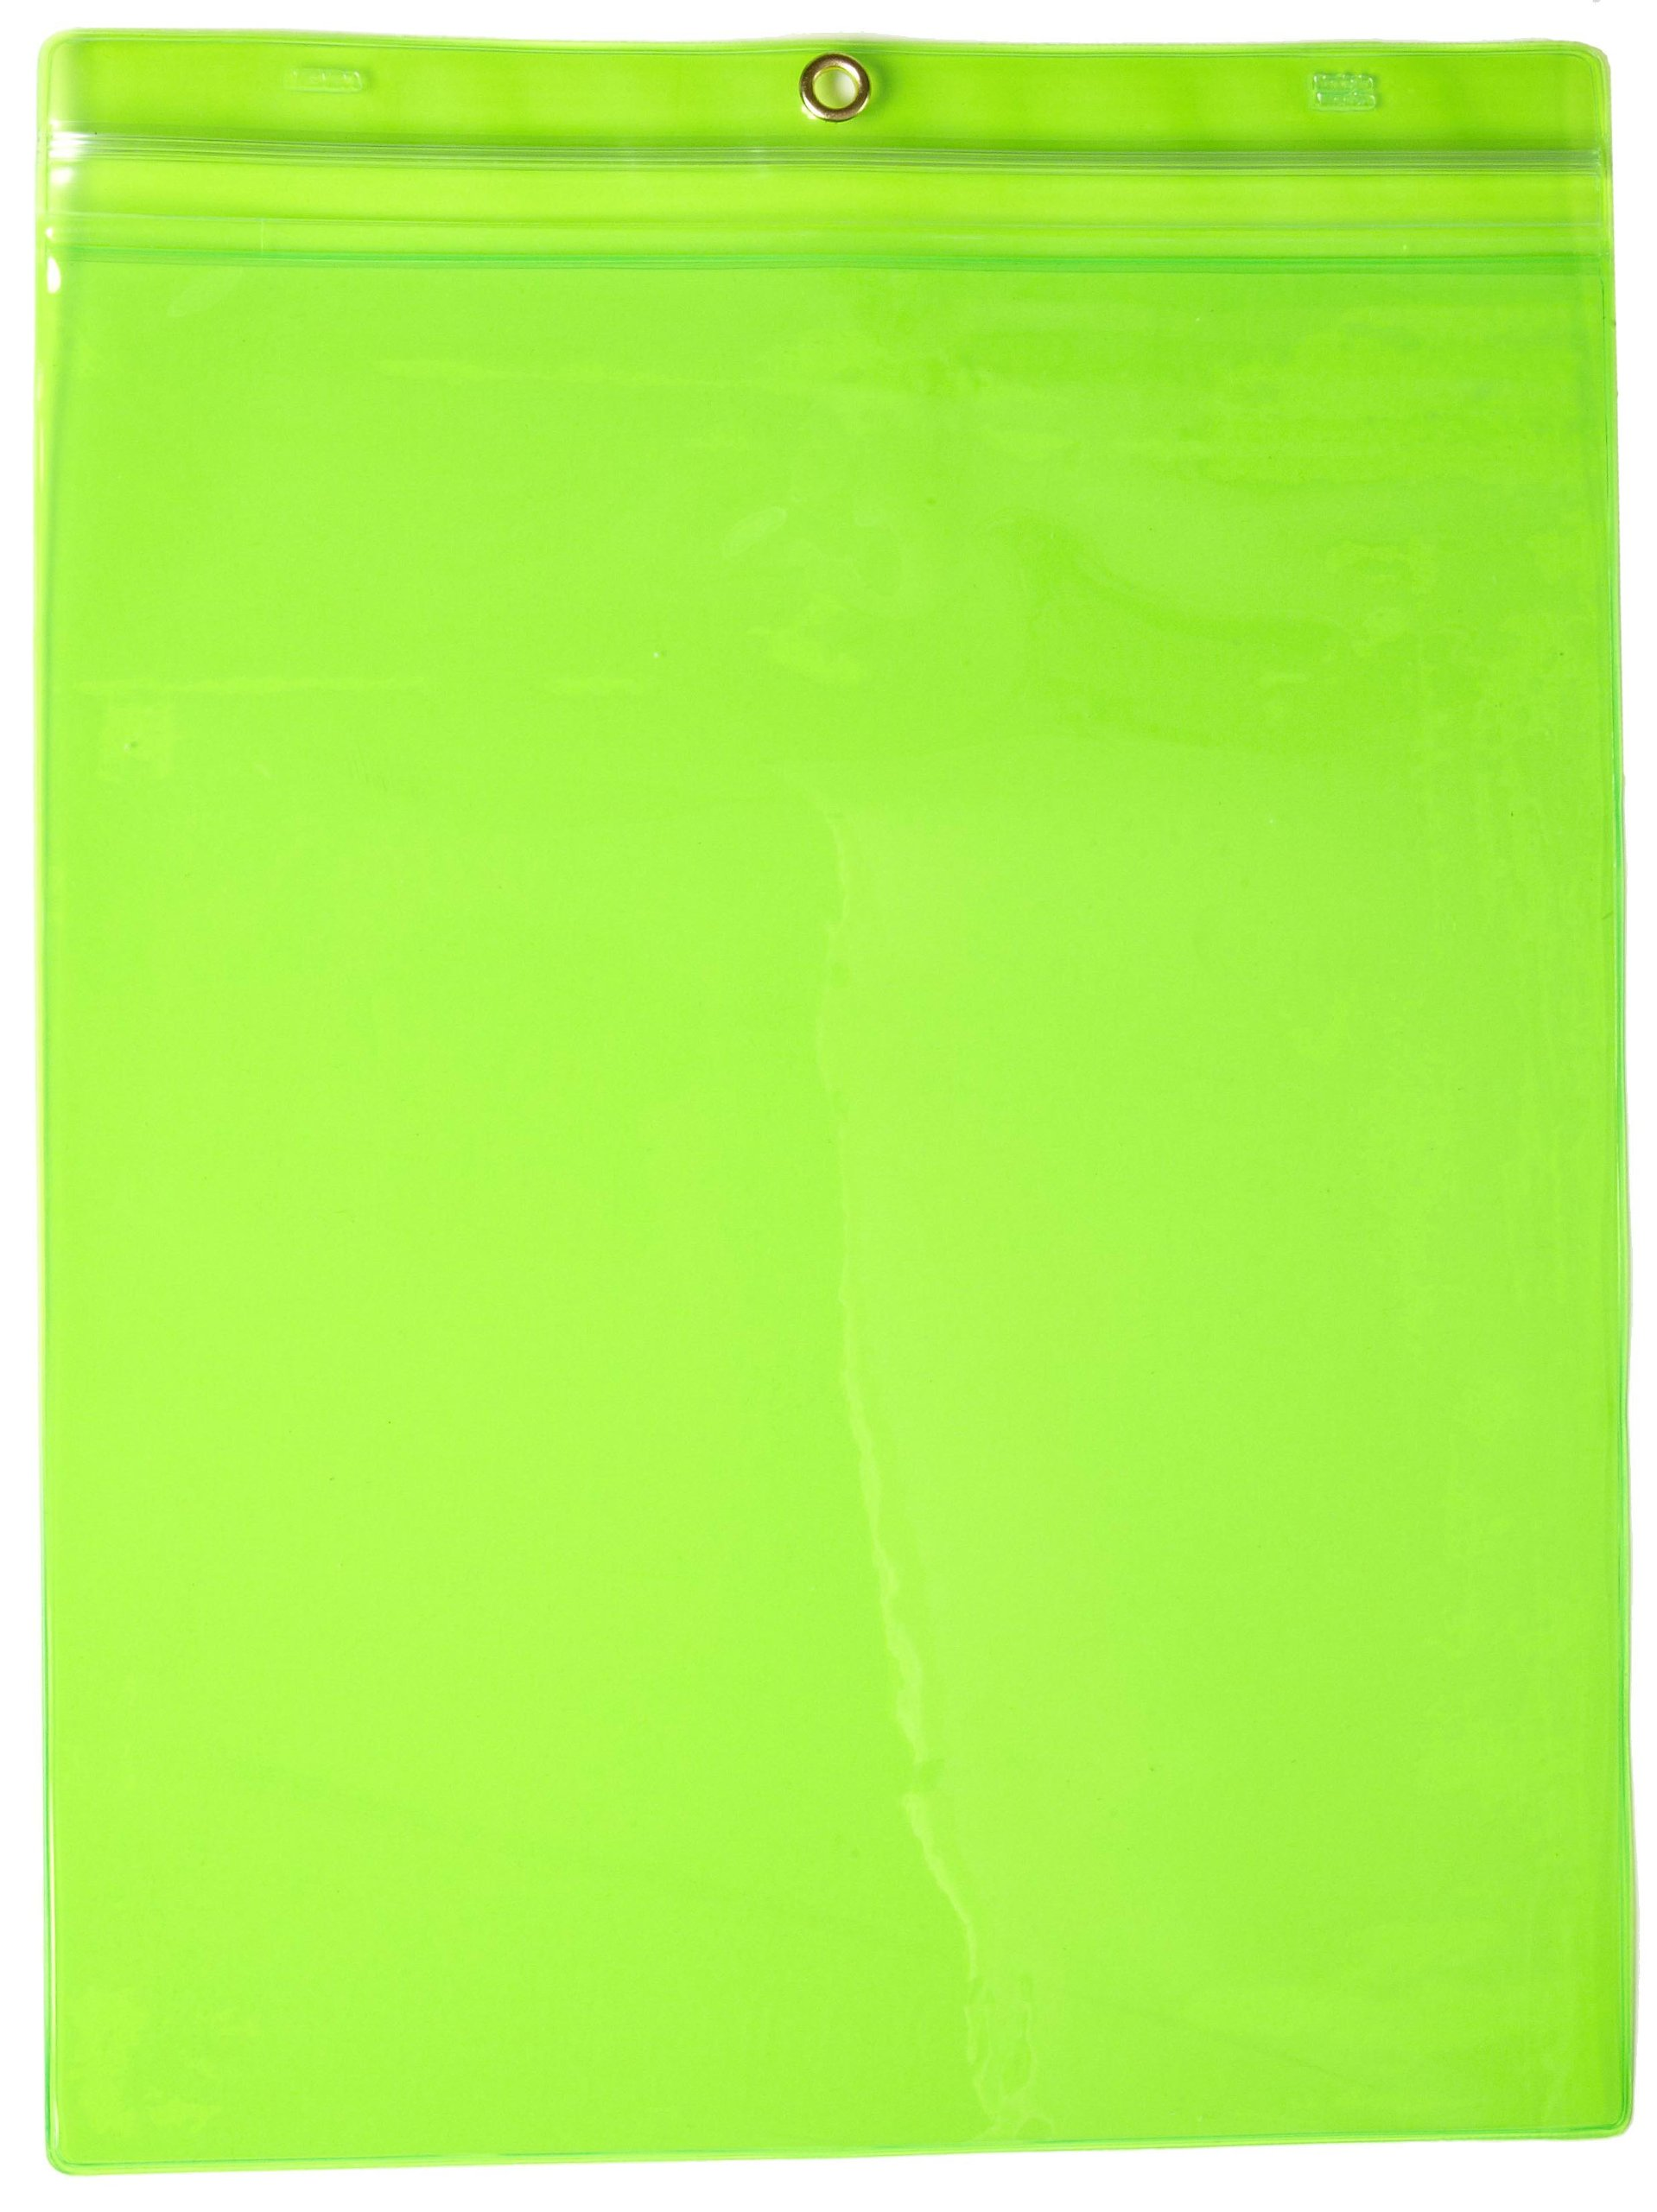 Menda 35091 Green Clear Vinyl Job Ticket Holder with Re-closable Zipper, 13-1/4'' Length x 9-3/4'' Width (Pack of 25)